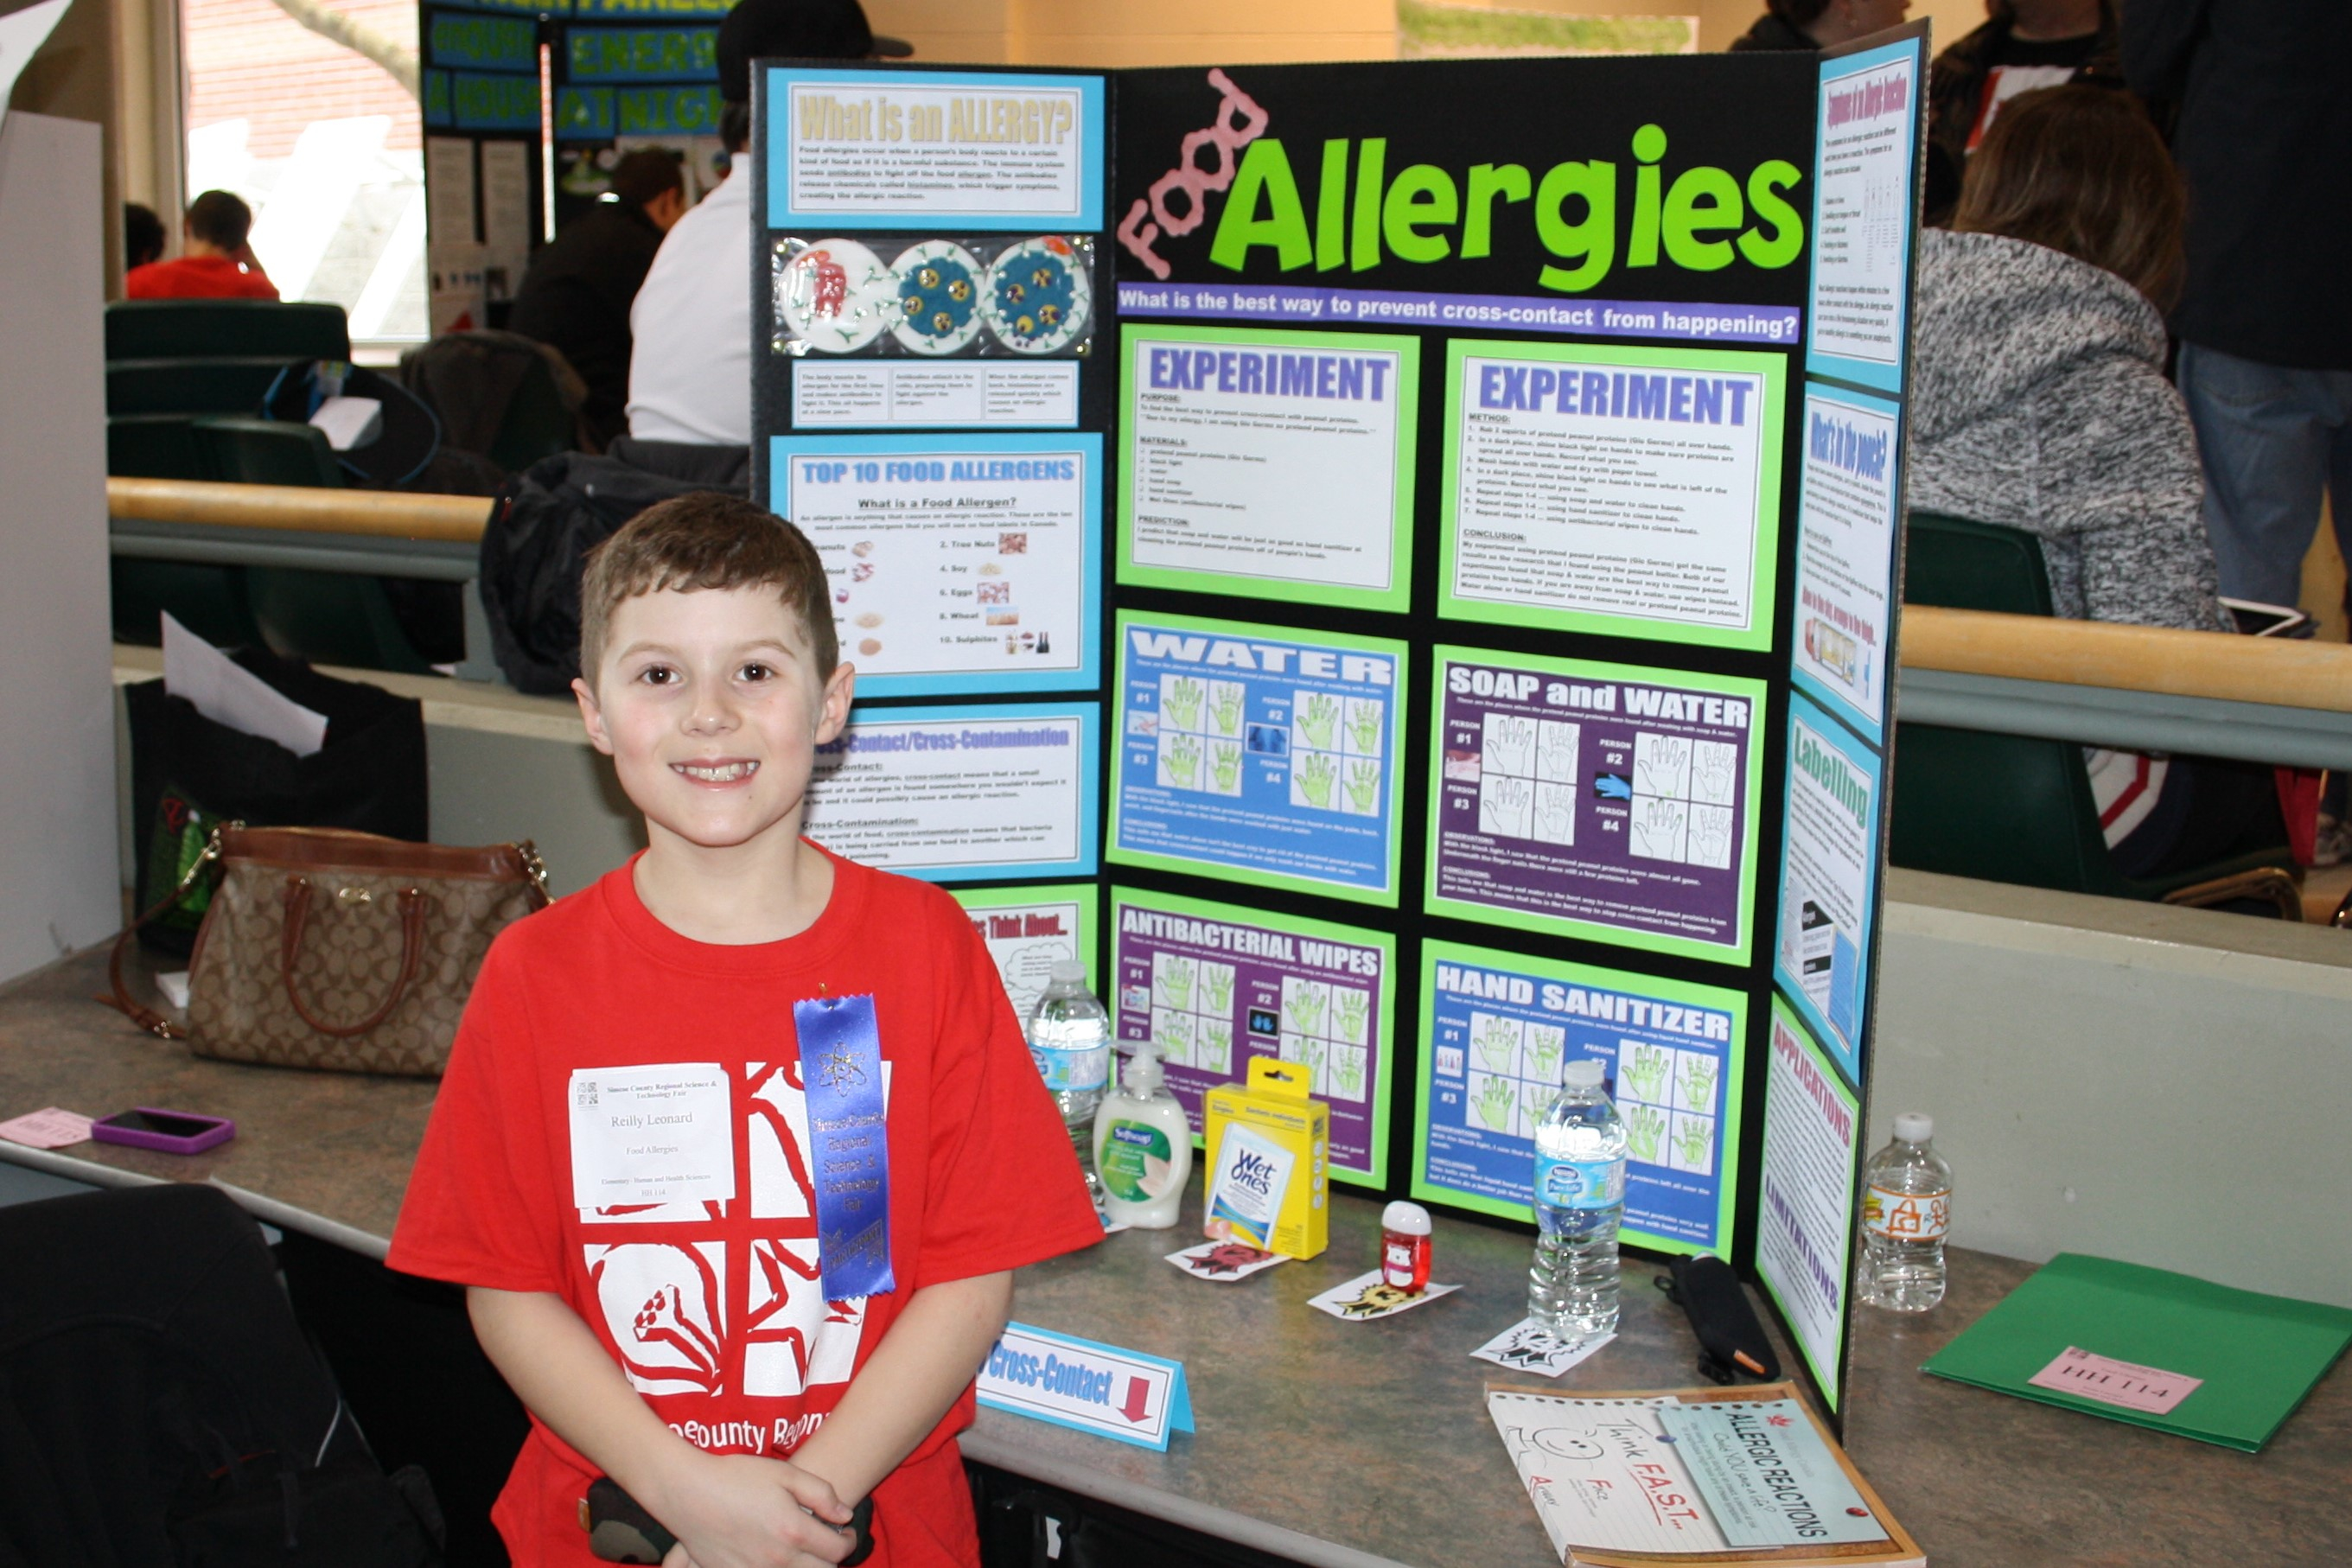 Ontario 5th Grader S Project Wins Awards And Inspires Food